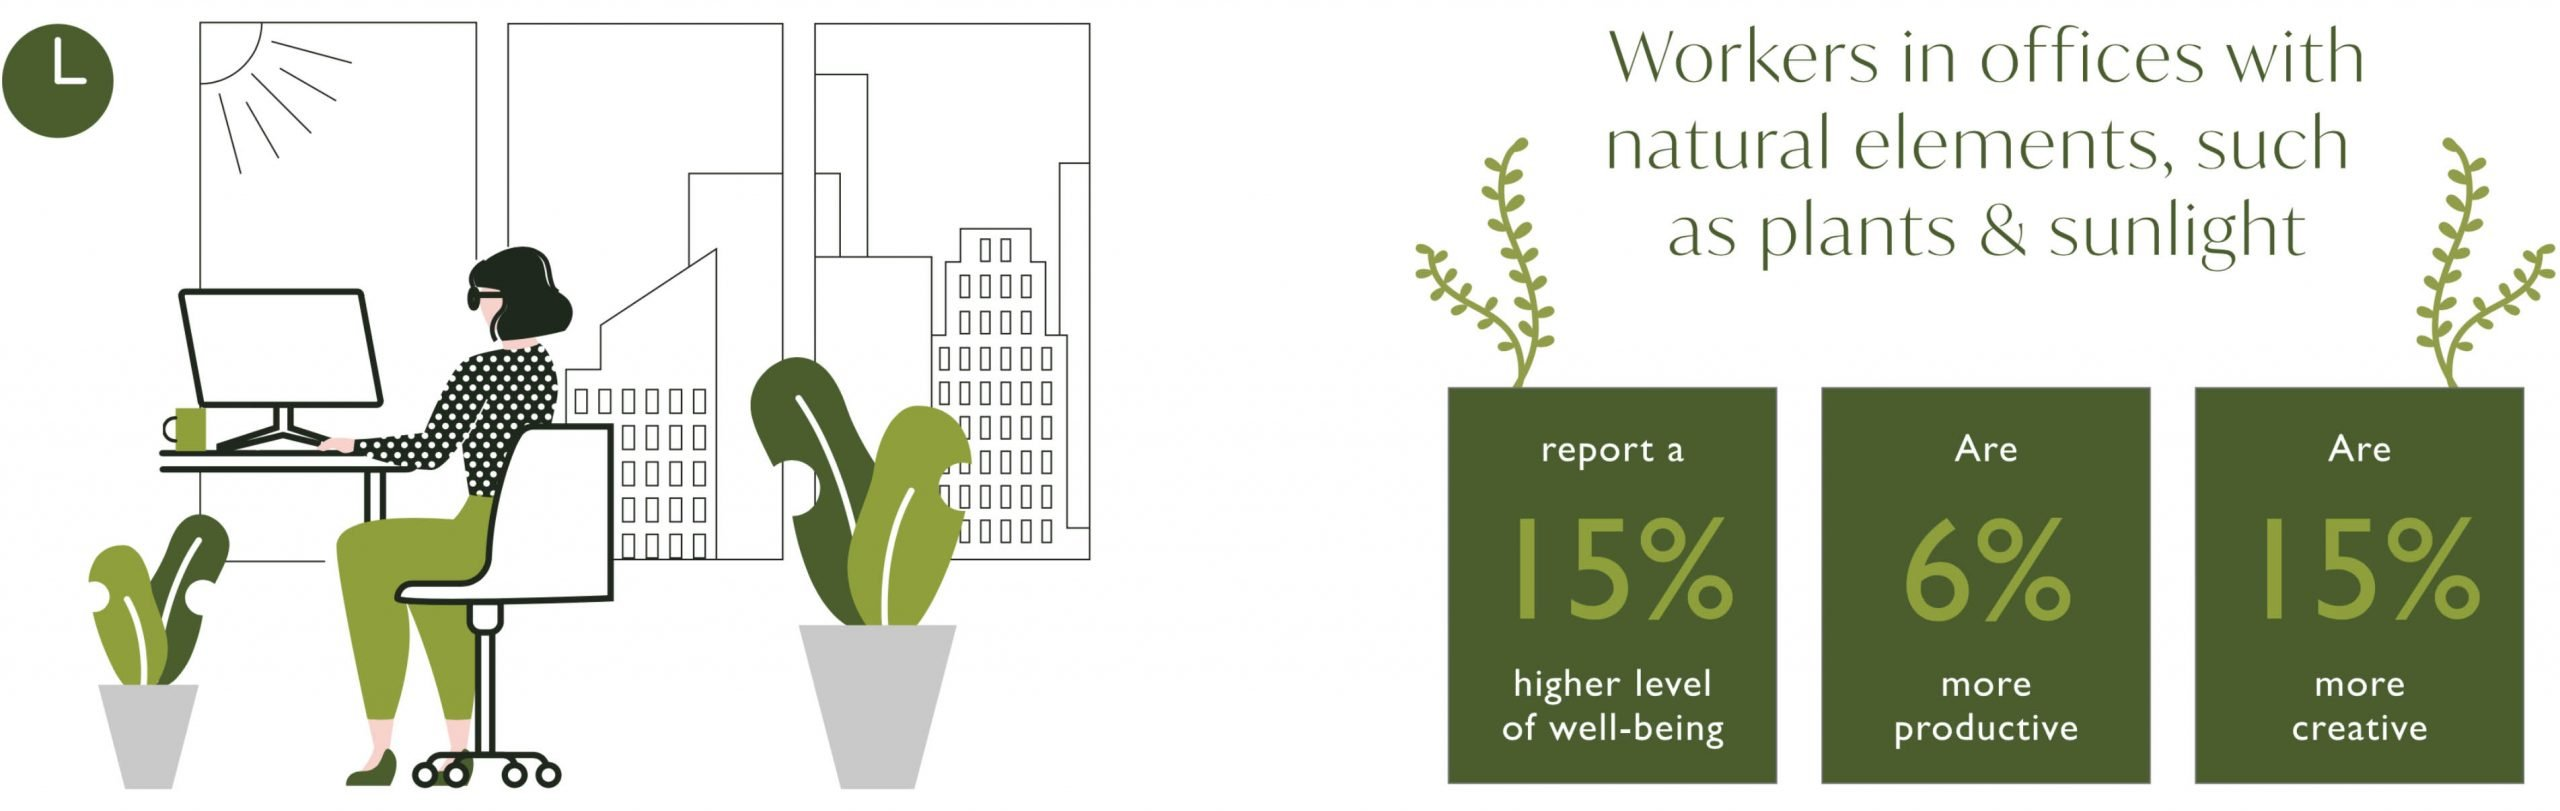 Infographic on benefits of how plants and sunlight boosted creativity, productivity and wellbeing